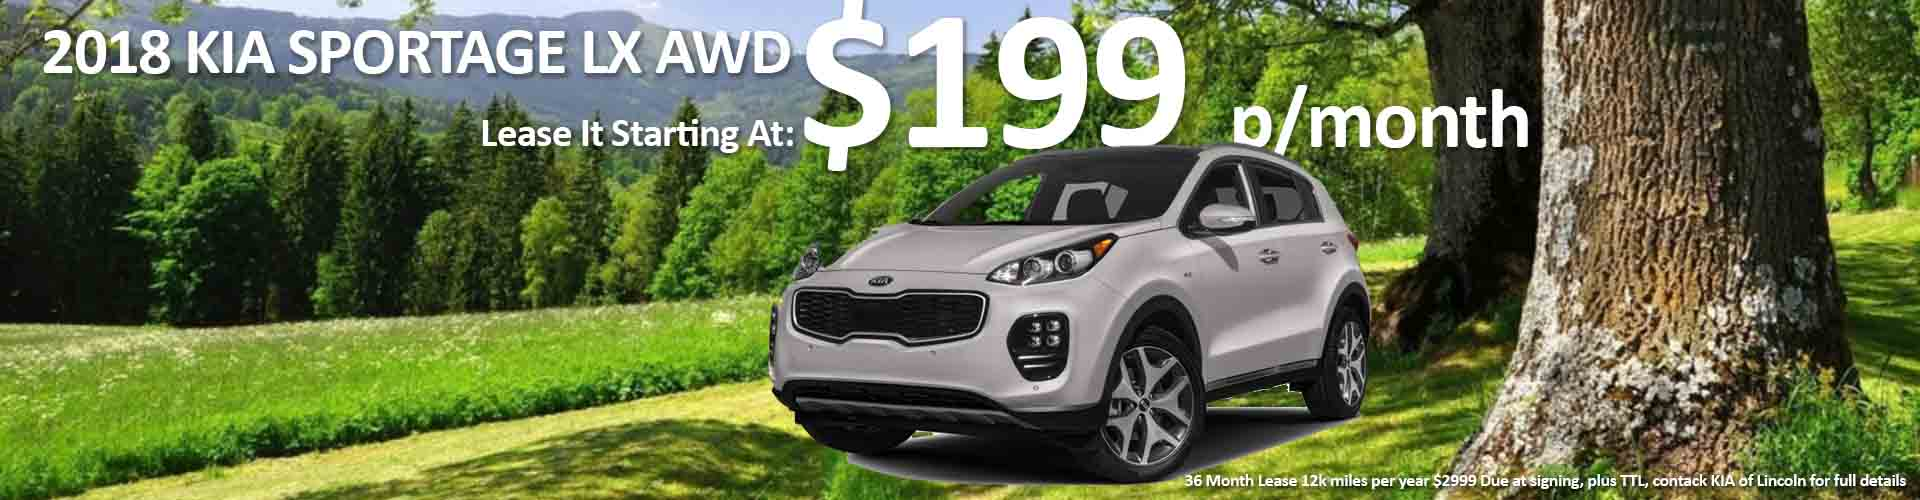 2018 Sportage All wheel drive SUV